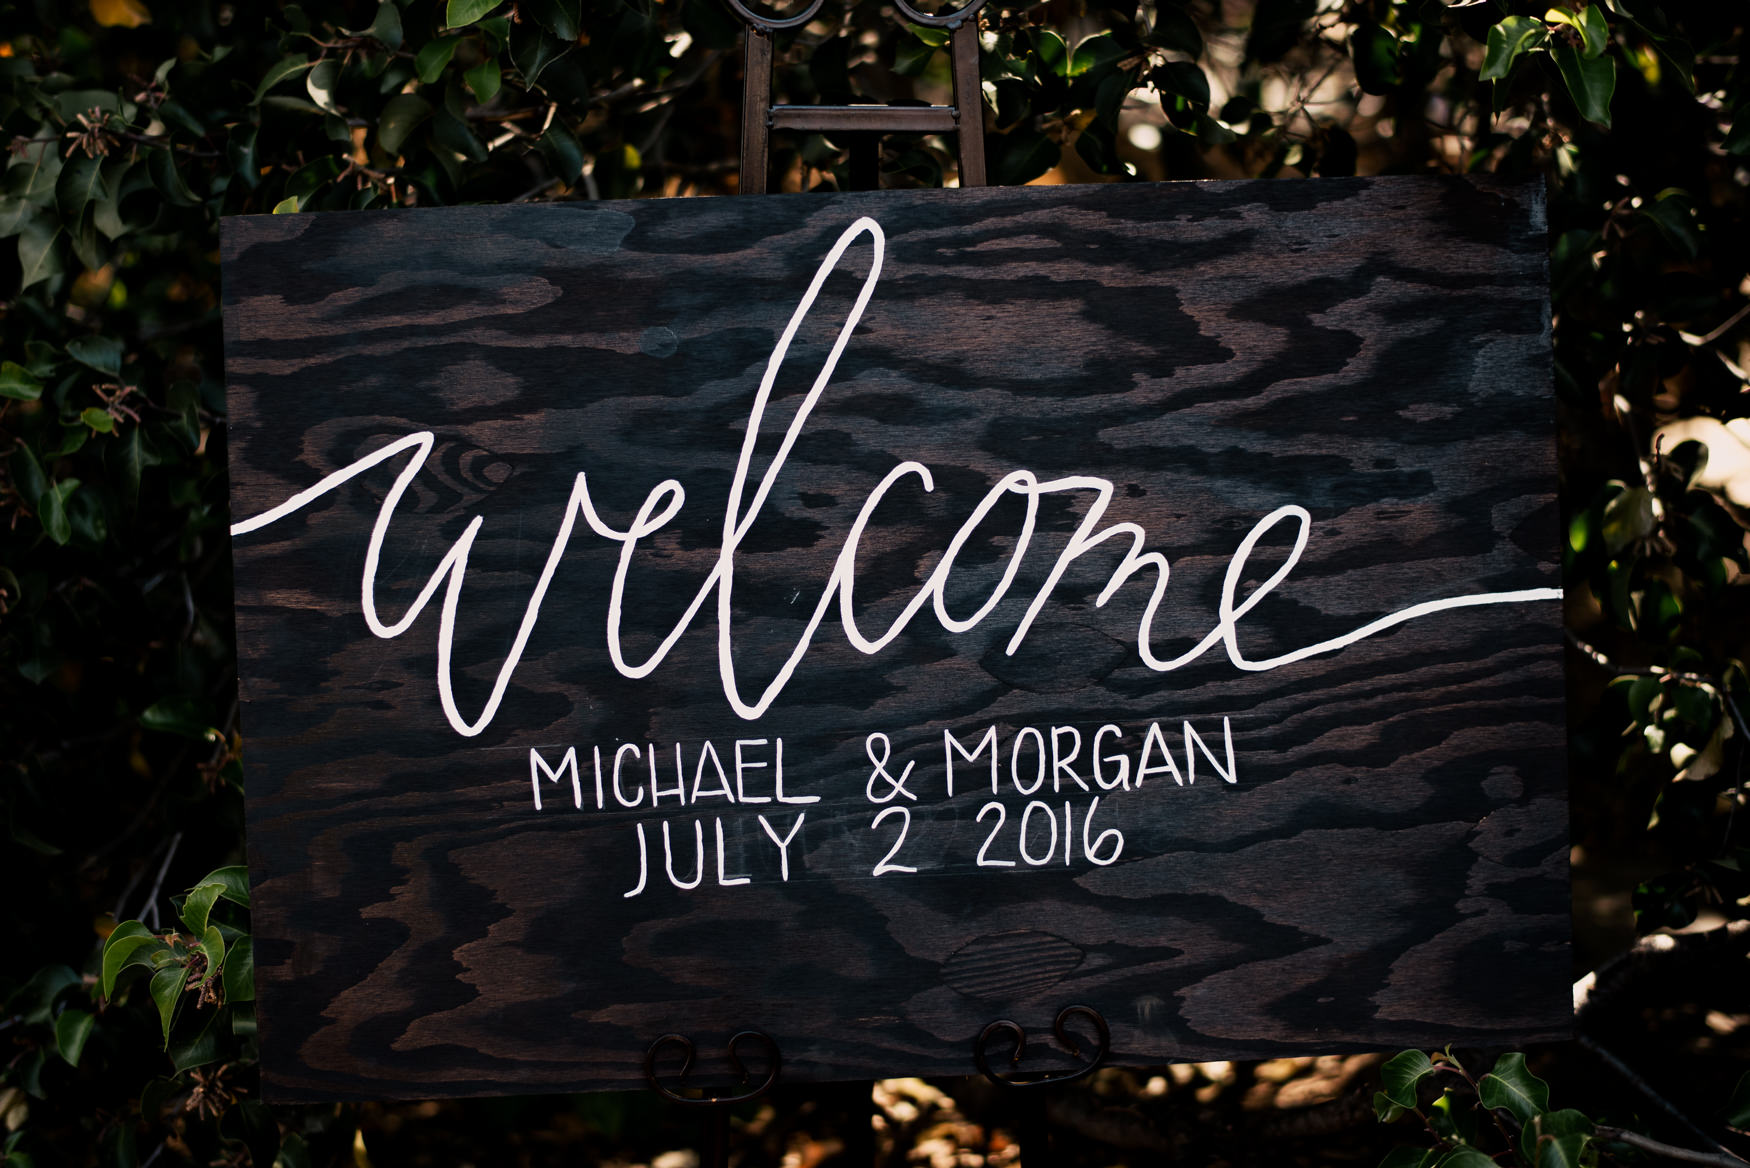 rsw-michael_morgan-wedding-027